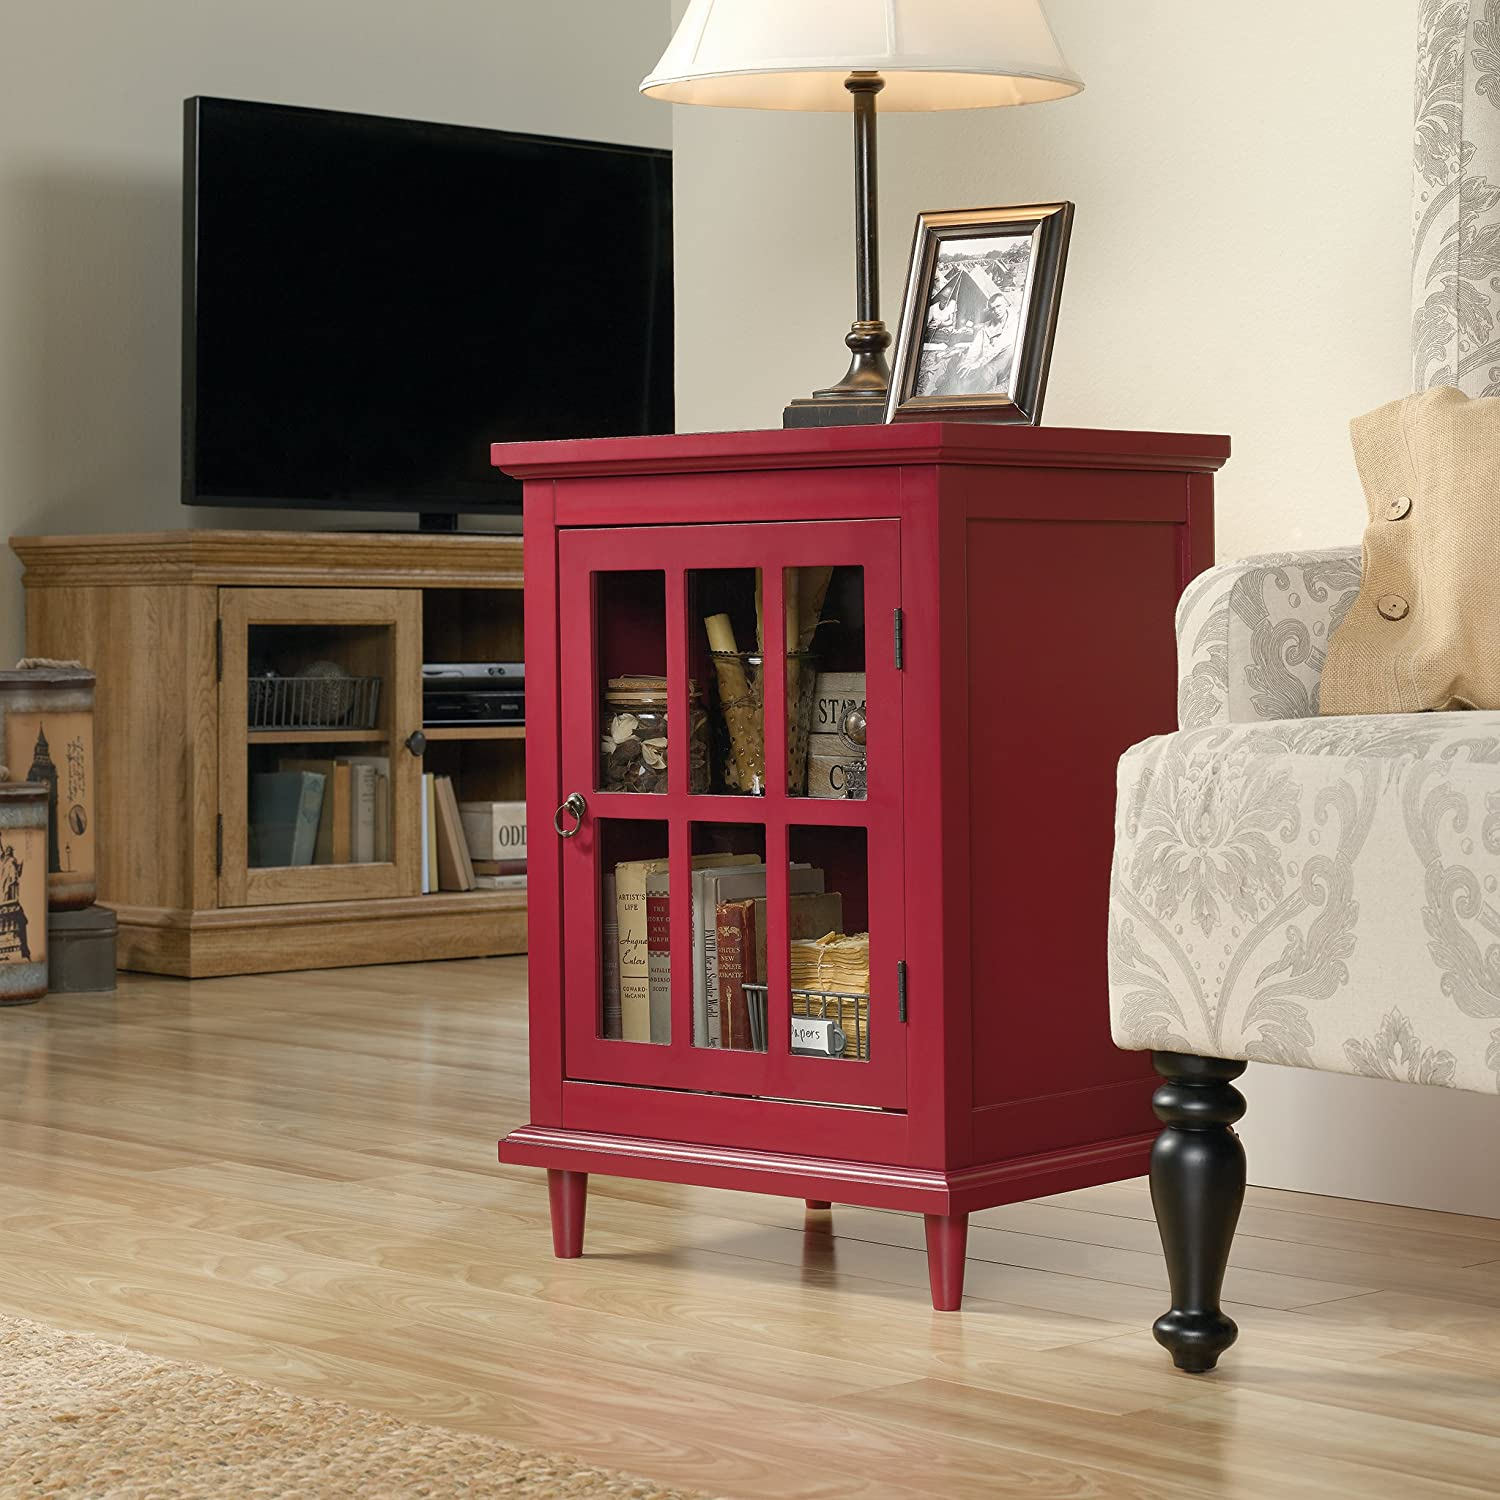 Sauder Barrister Lane Side Table, Berry Red finish